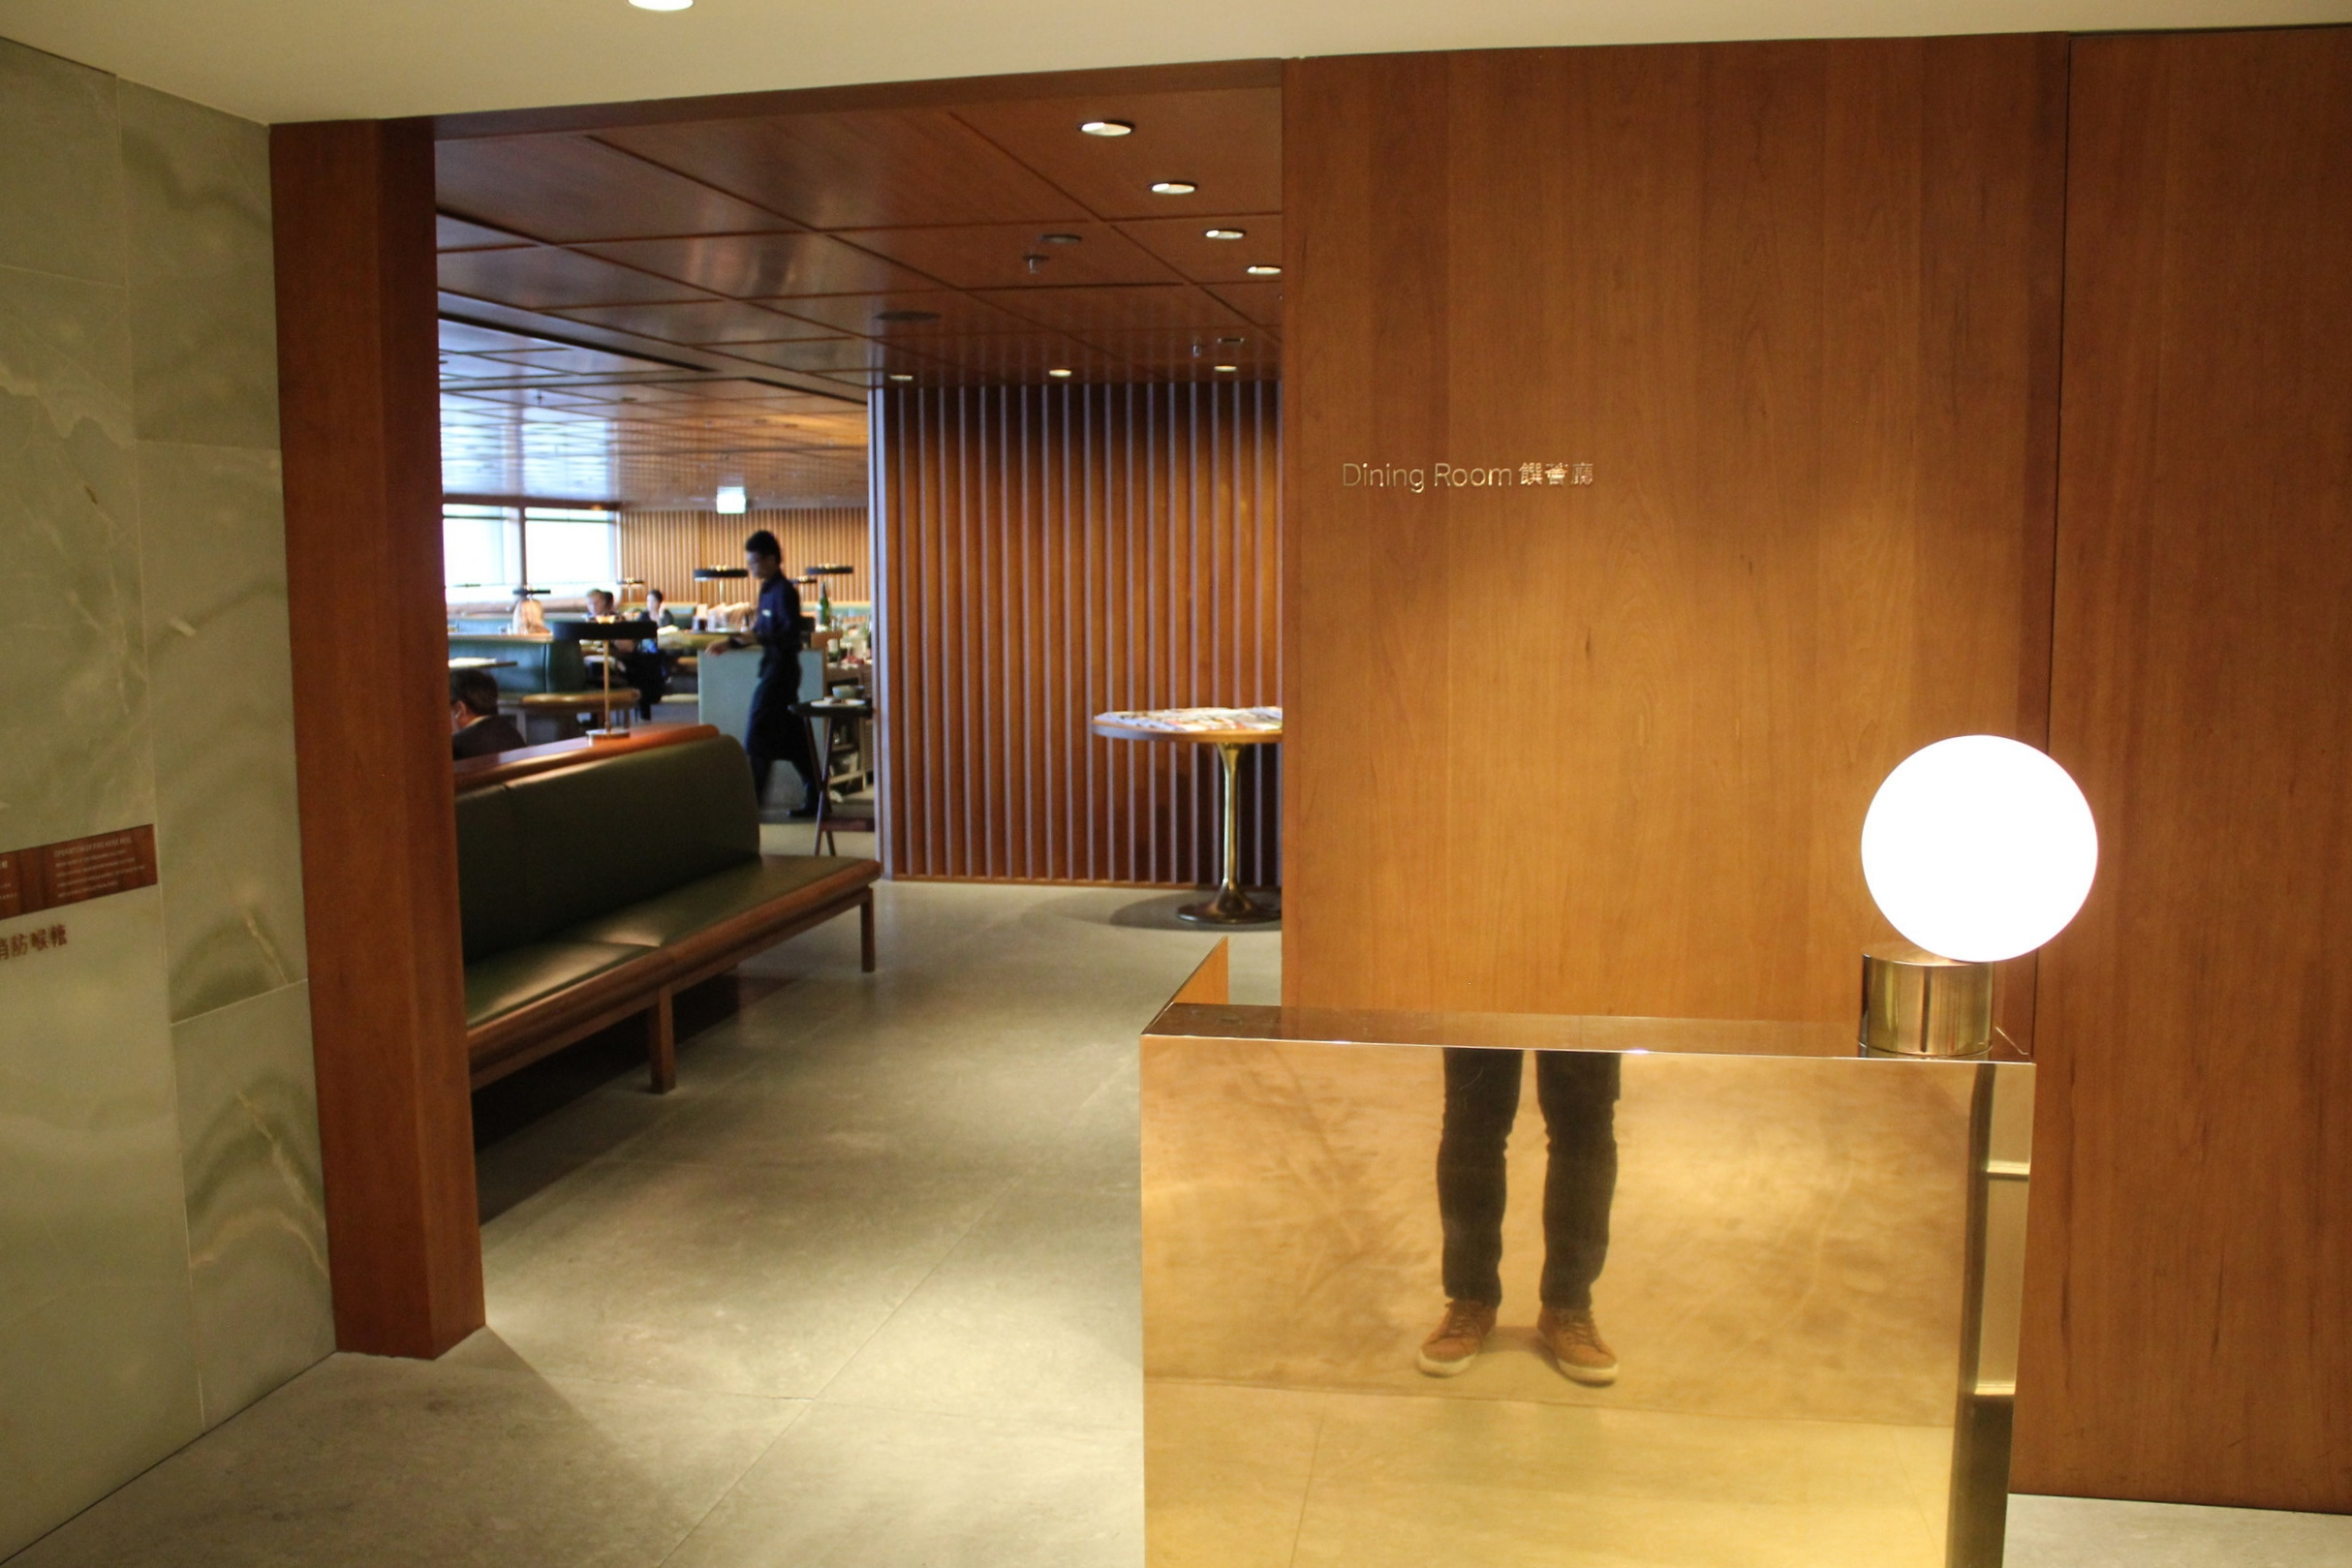 The Pier First Class Lounge by Cathay Pacific – The Dining Room entrance